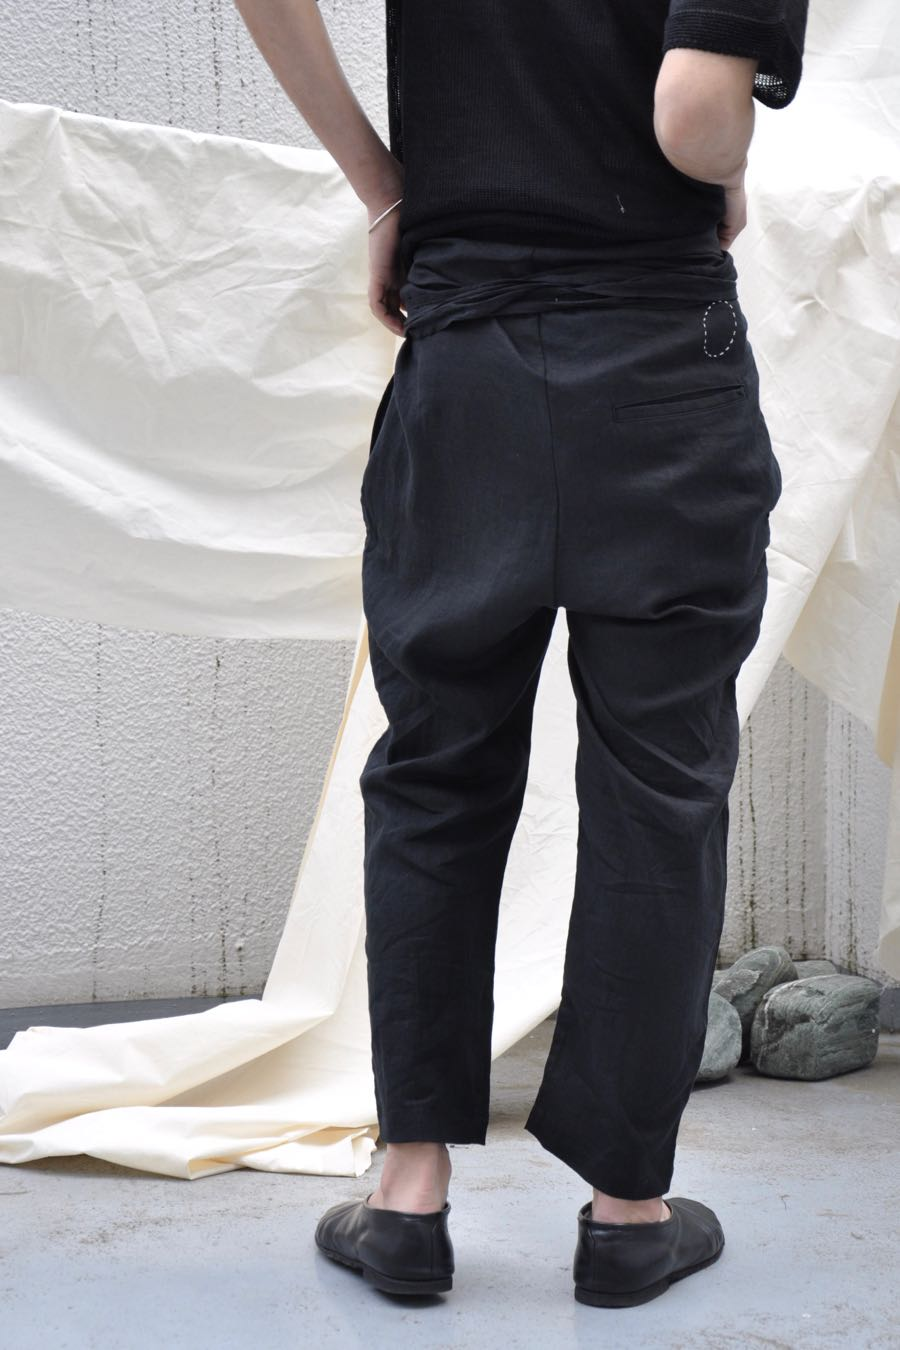 Organic Cotton Wrap Pants (Black) by Cosmic Wonder